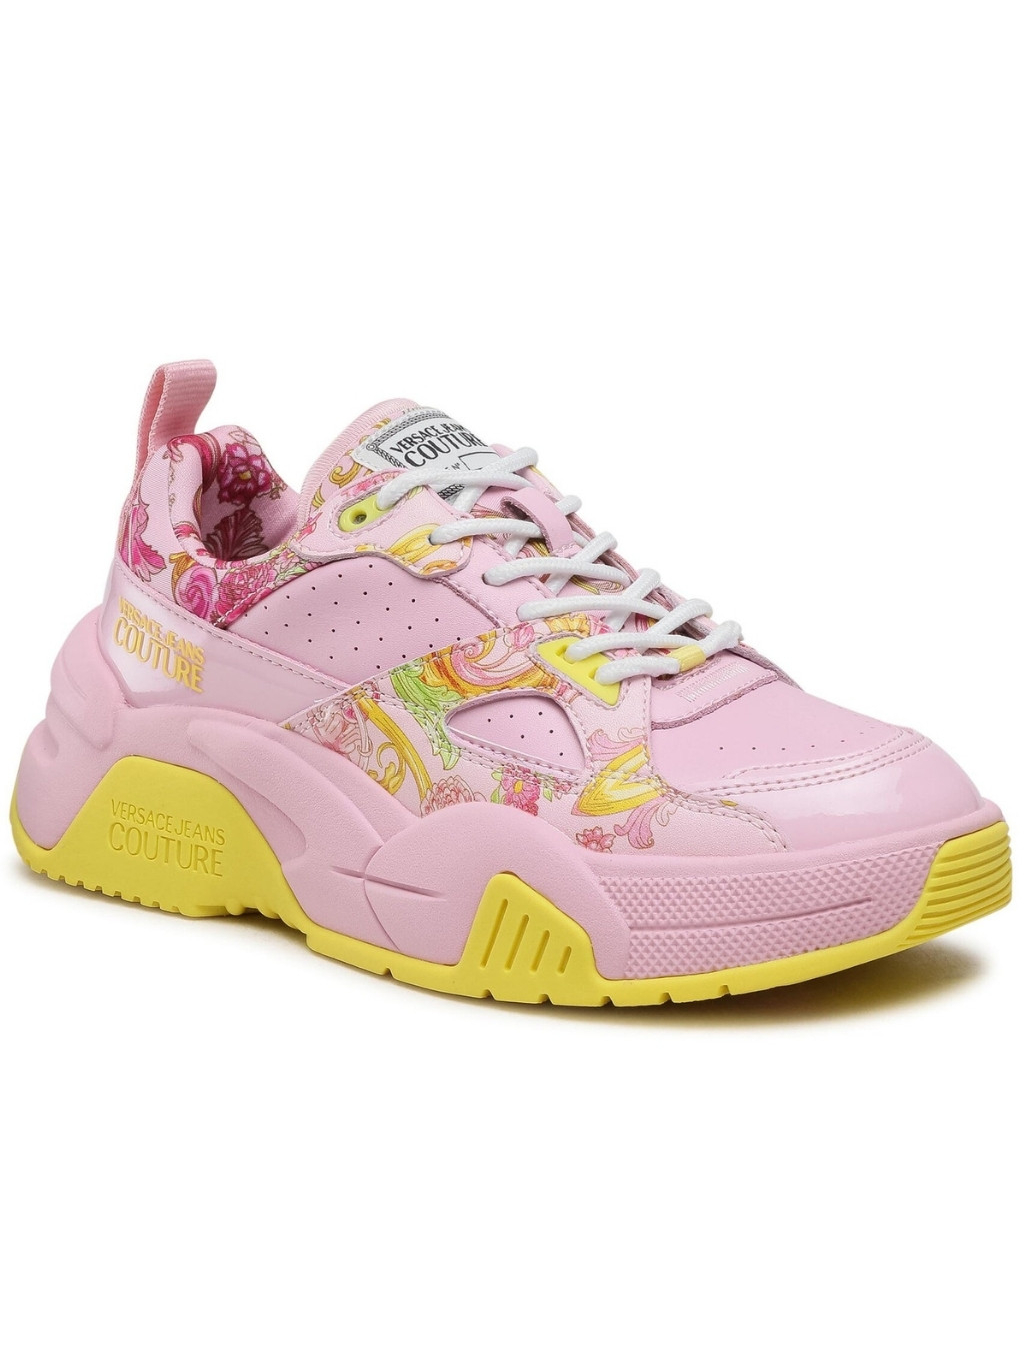 VERSACE JEANS COUTURE Fire 1 Pink tenisky (2)